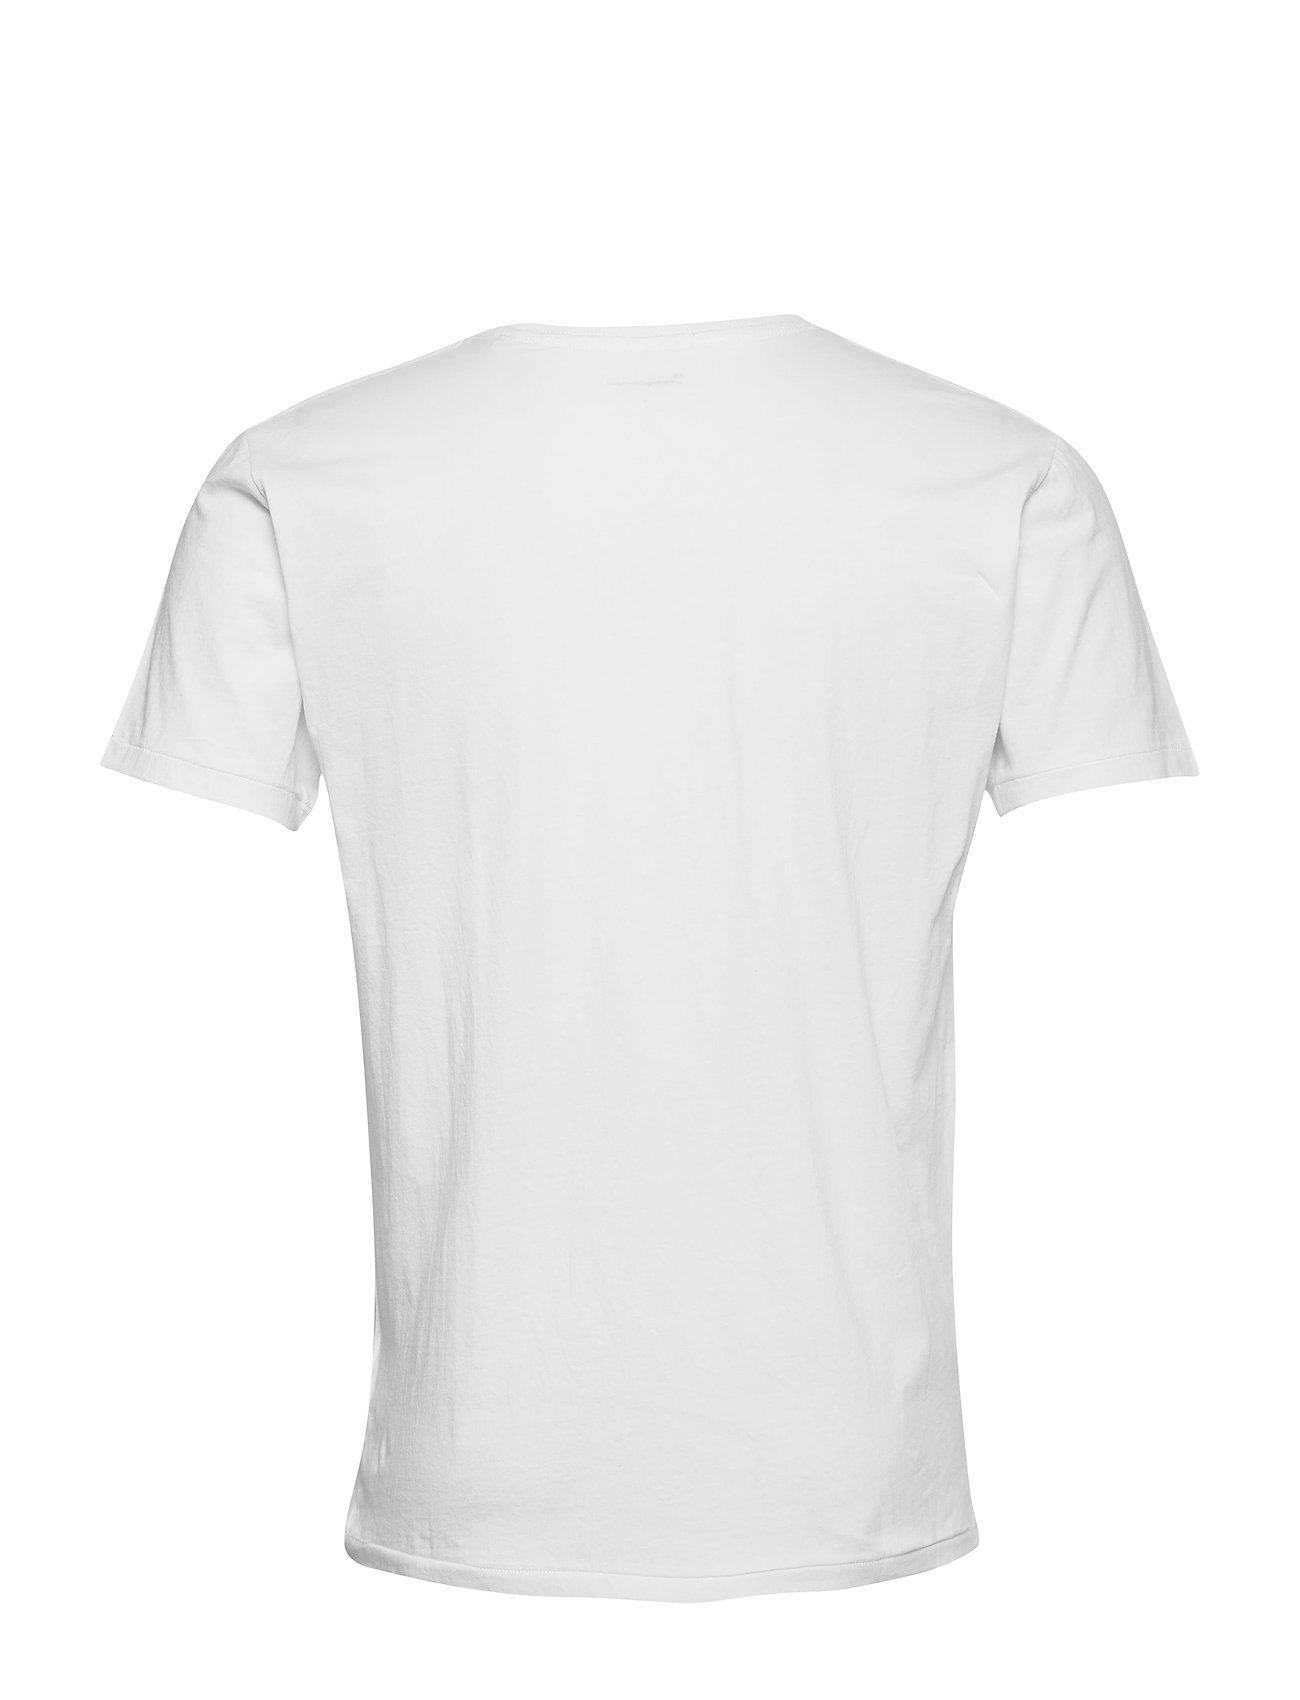 Knowledge Cotton Apparel - ALDER 5 pack basic tee - flat packe - basic t-shirts - bright white - 7